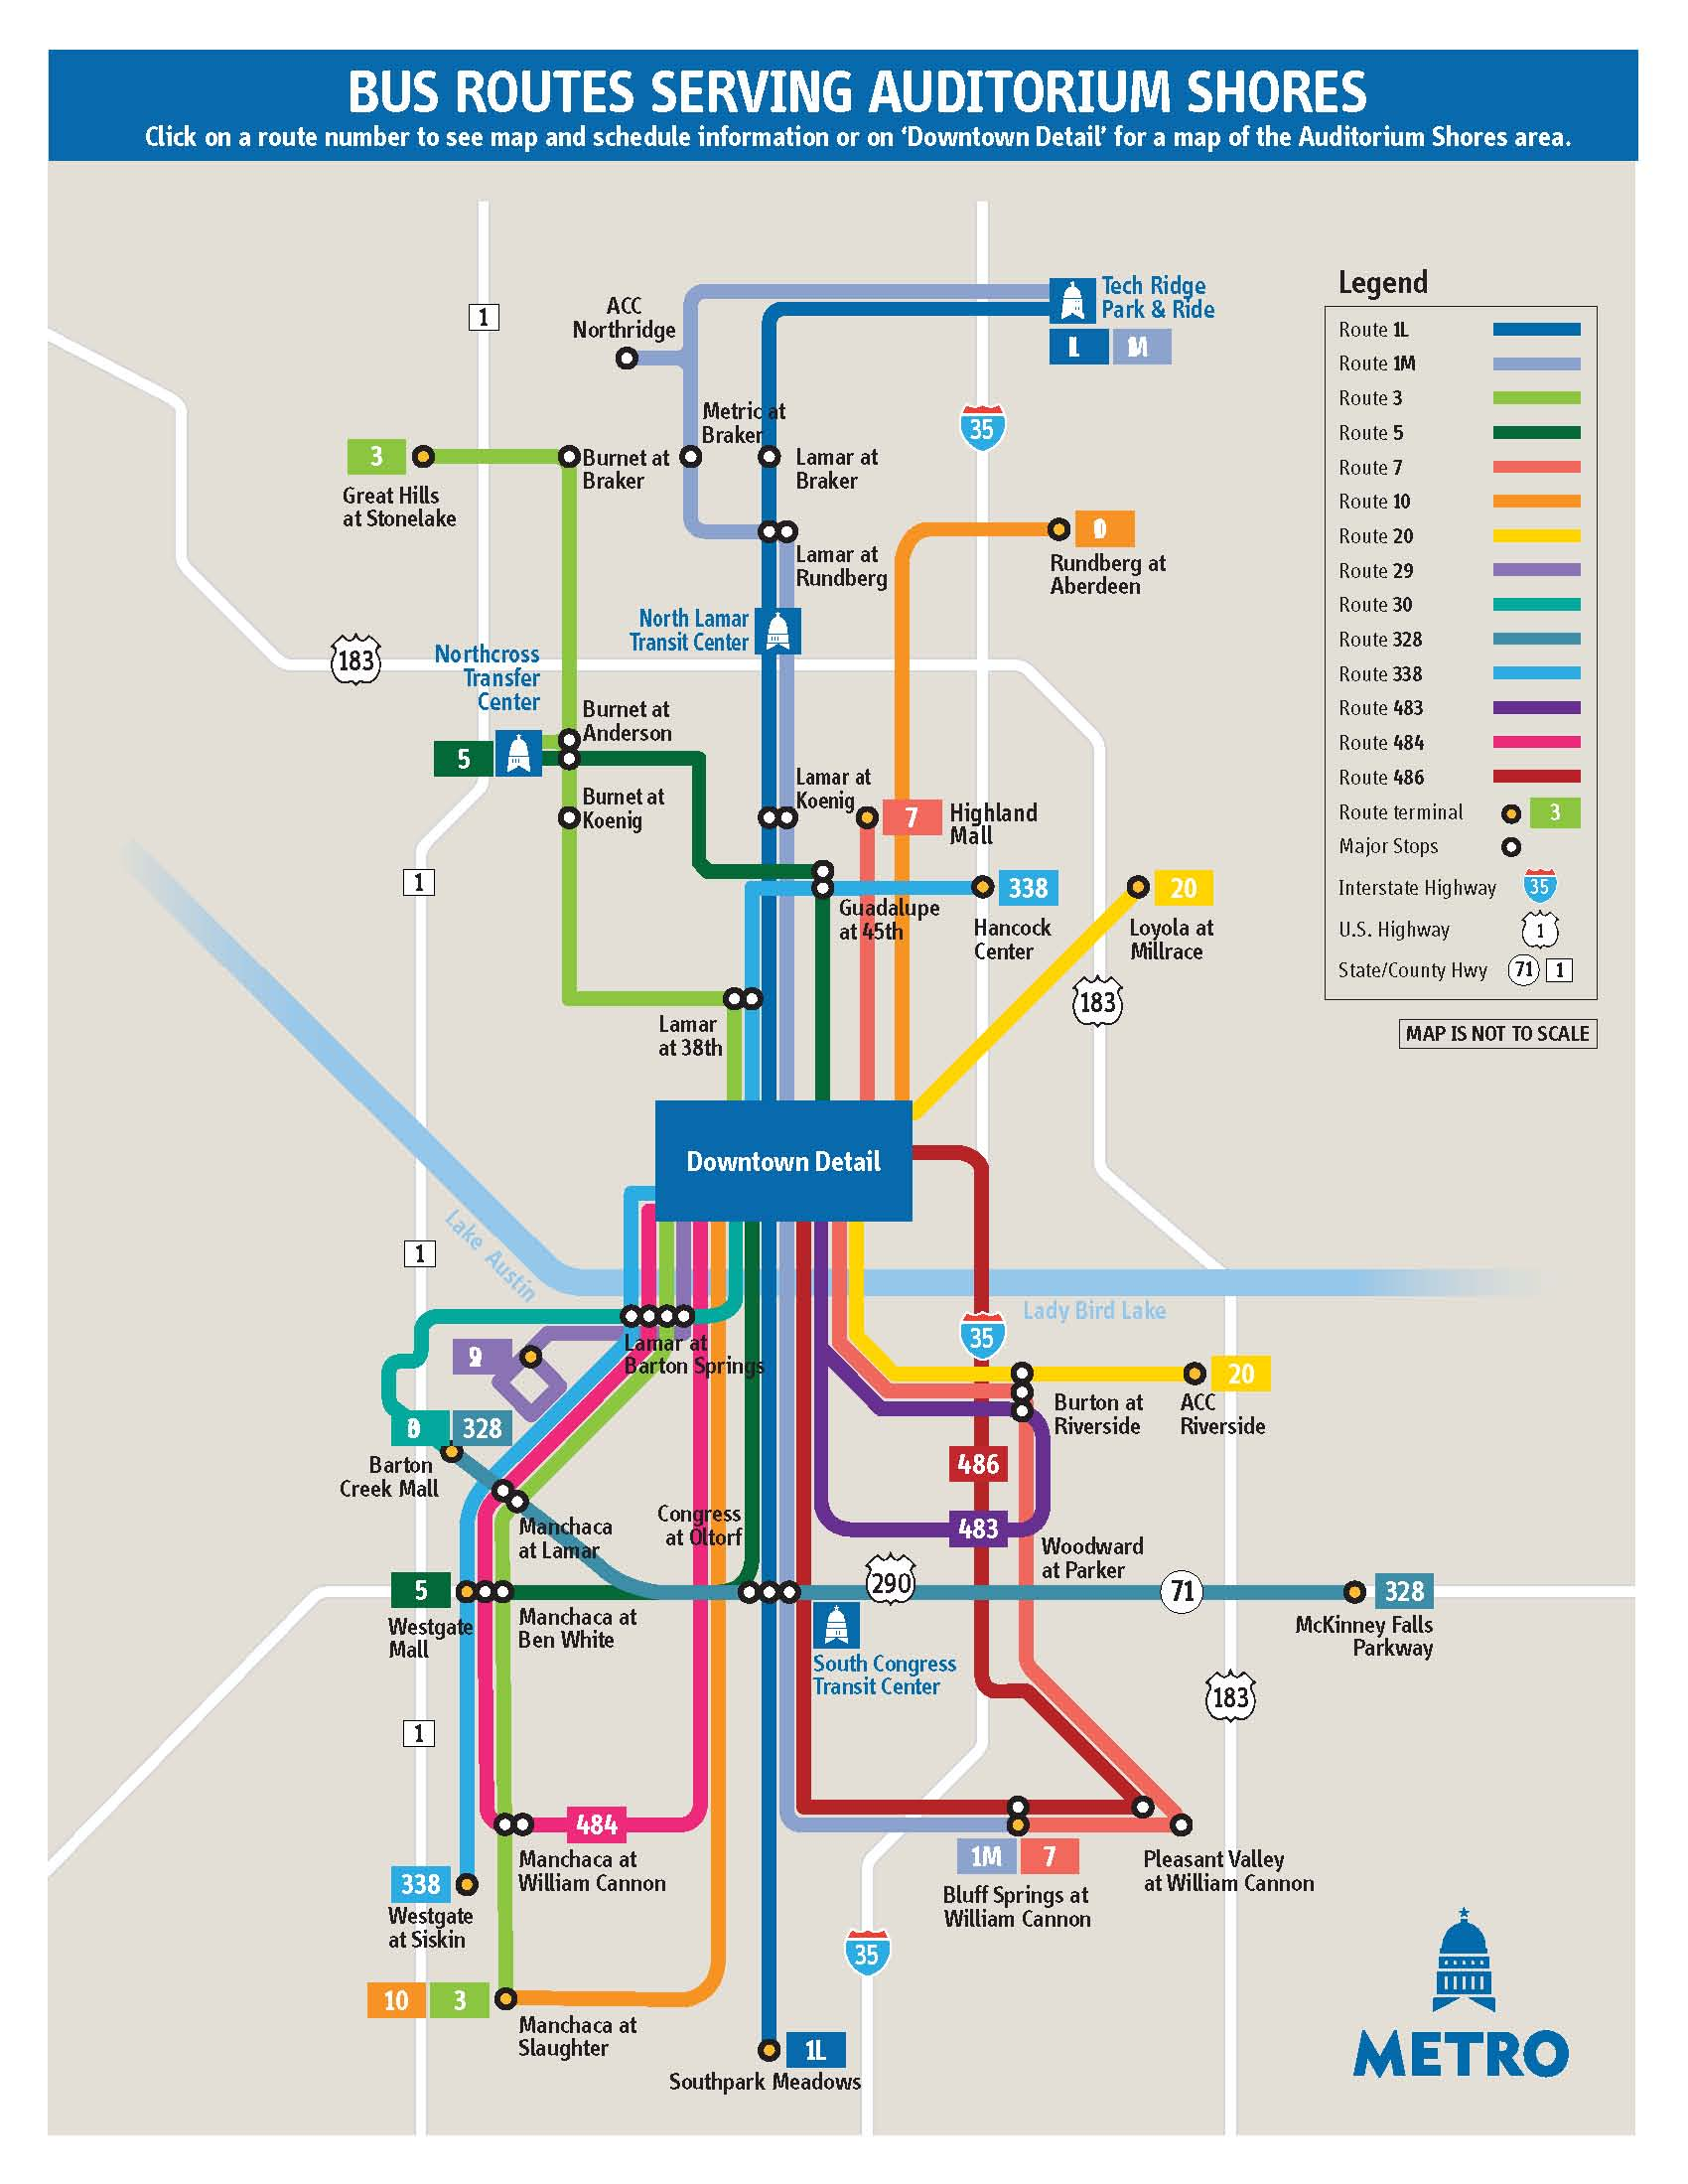 auditorium shores routes map - austin tx • mappery